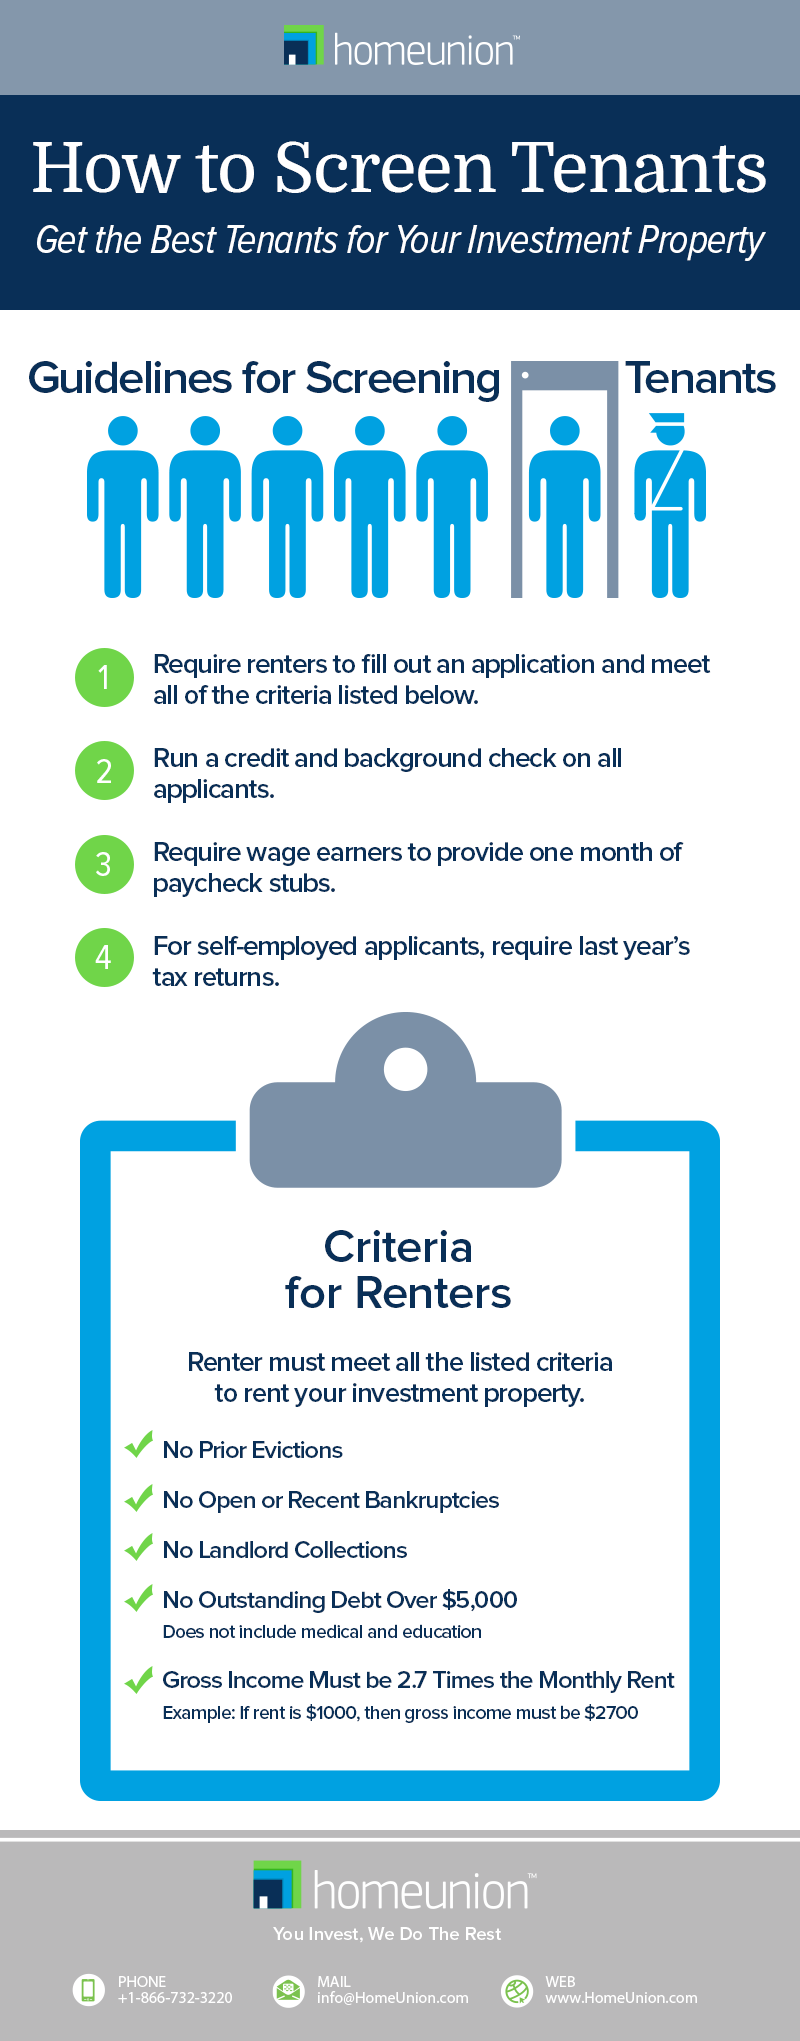 Infographic on Best Practices to Screen Tenants